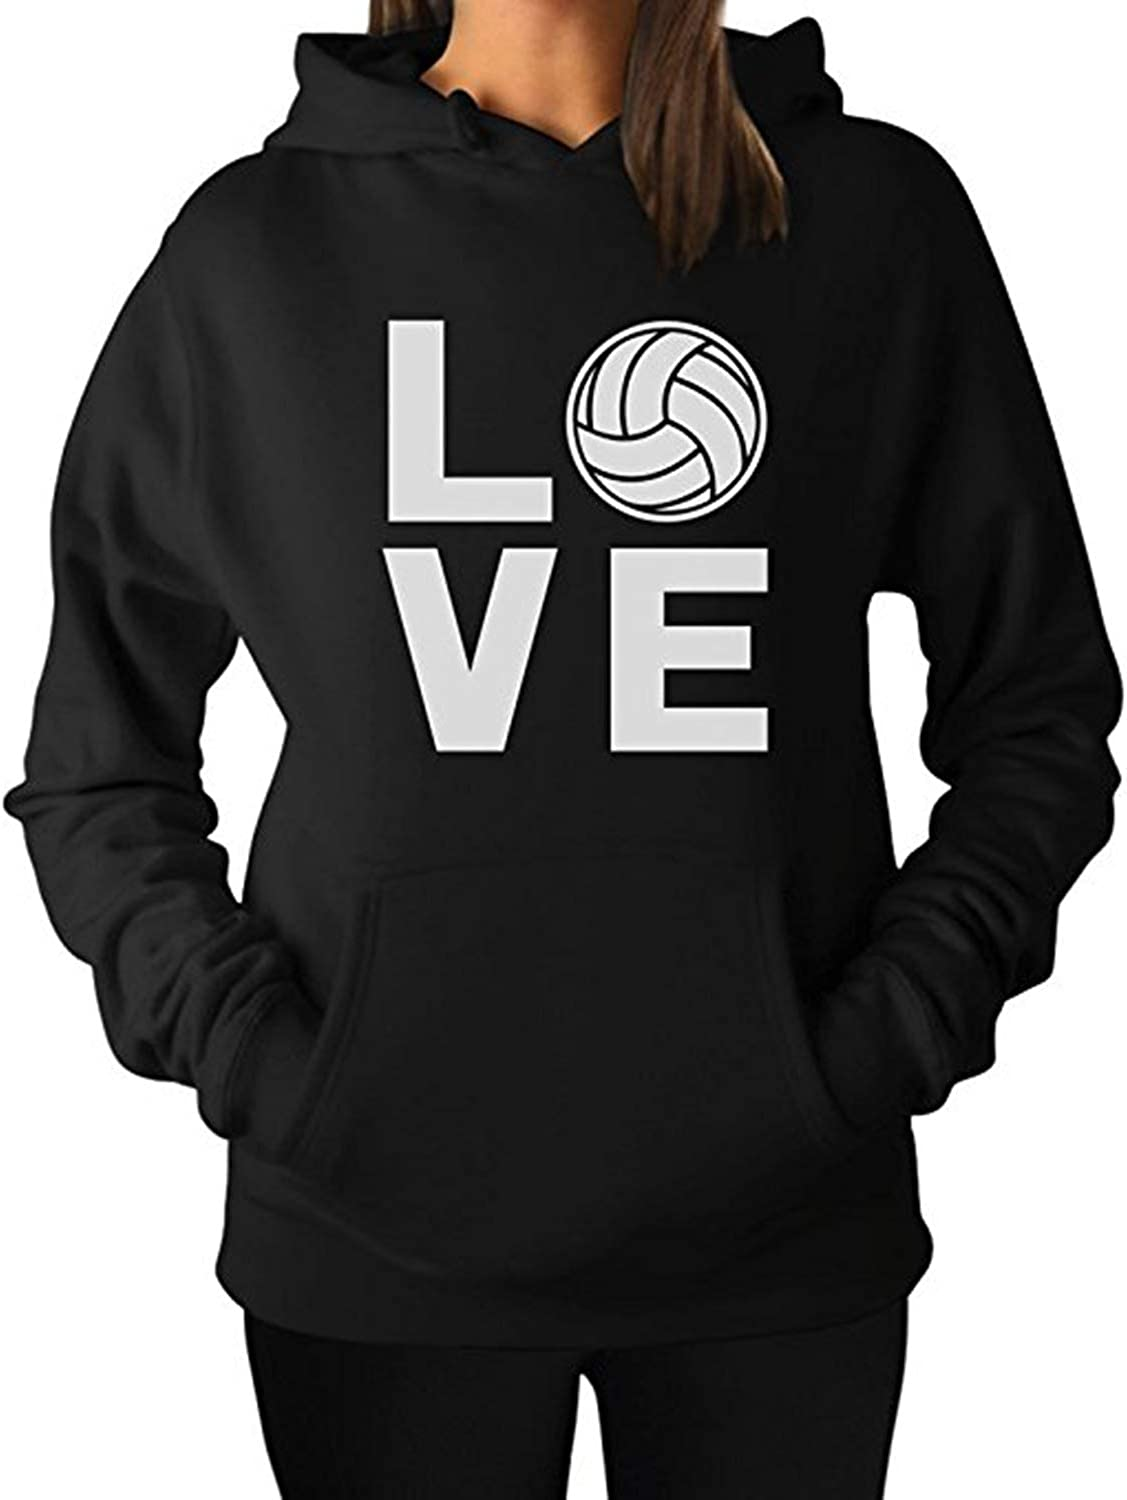 LELE Love Volleyball Unisex Boy Girl Youth Women Men Adult Pullover Hooded Pocket Hoodie Sweatshirt